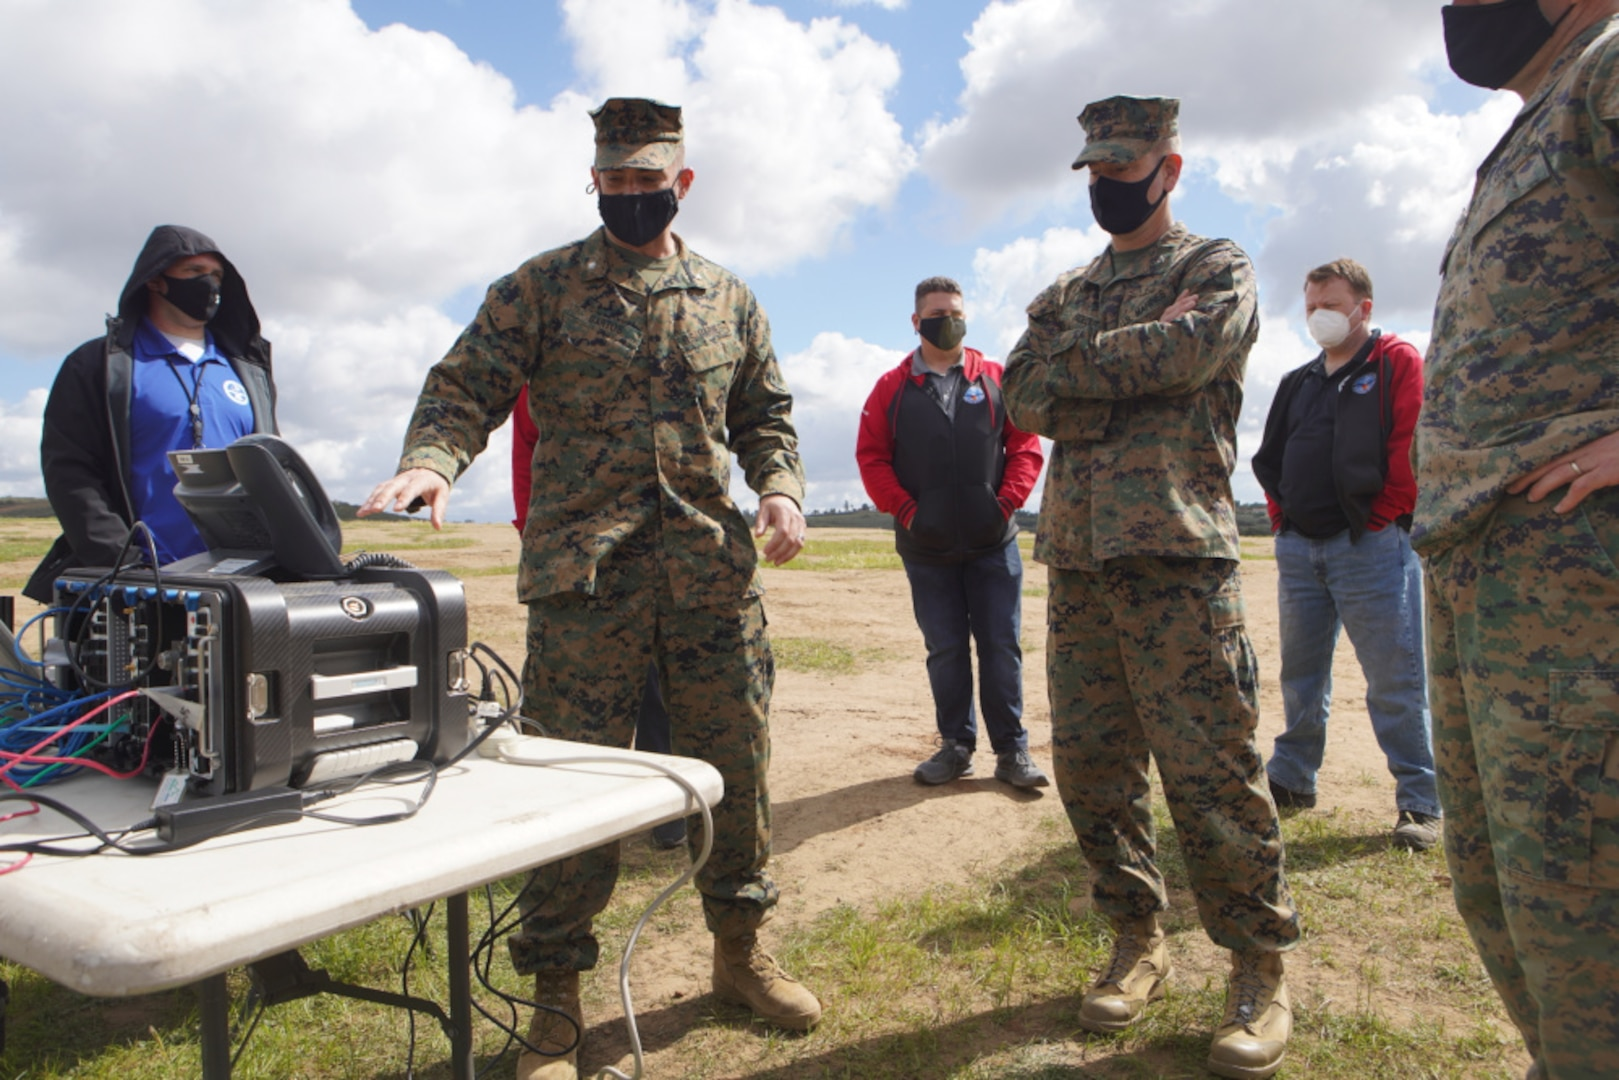 U.S. Marine Corps Lt. Col. Daniel Bartos (left) with Defense Information Systems Agency explains the concept of the Cloud Layered Obfuscation Application Kit to Col. Brian Rideout, commanding officer for I Marine Expeditionary Force Information Group, during a practical exercise at Marine Corps Base Camp Pendleton, California, March 9.